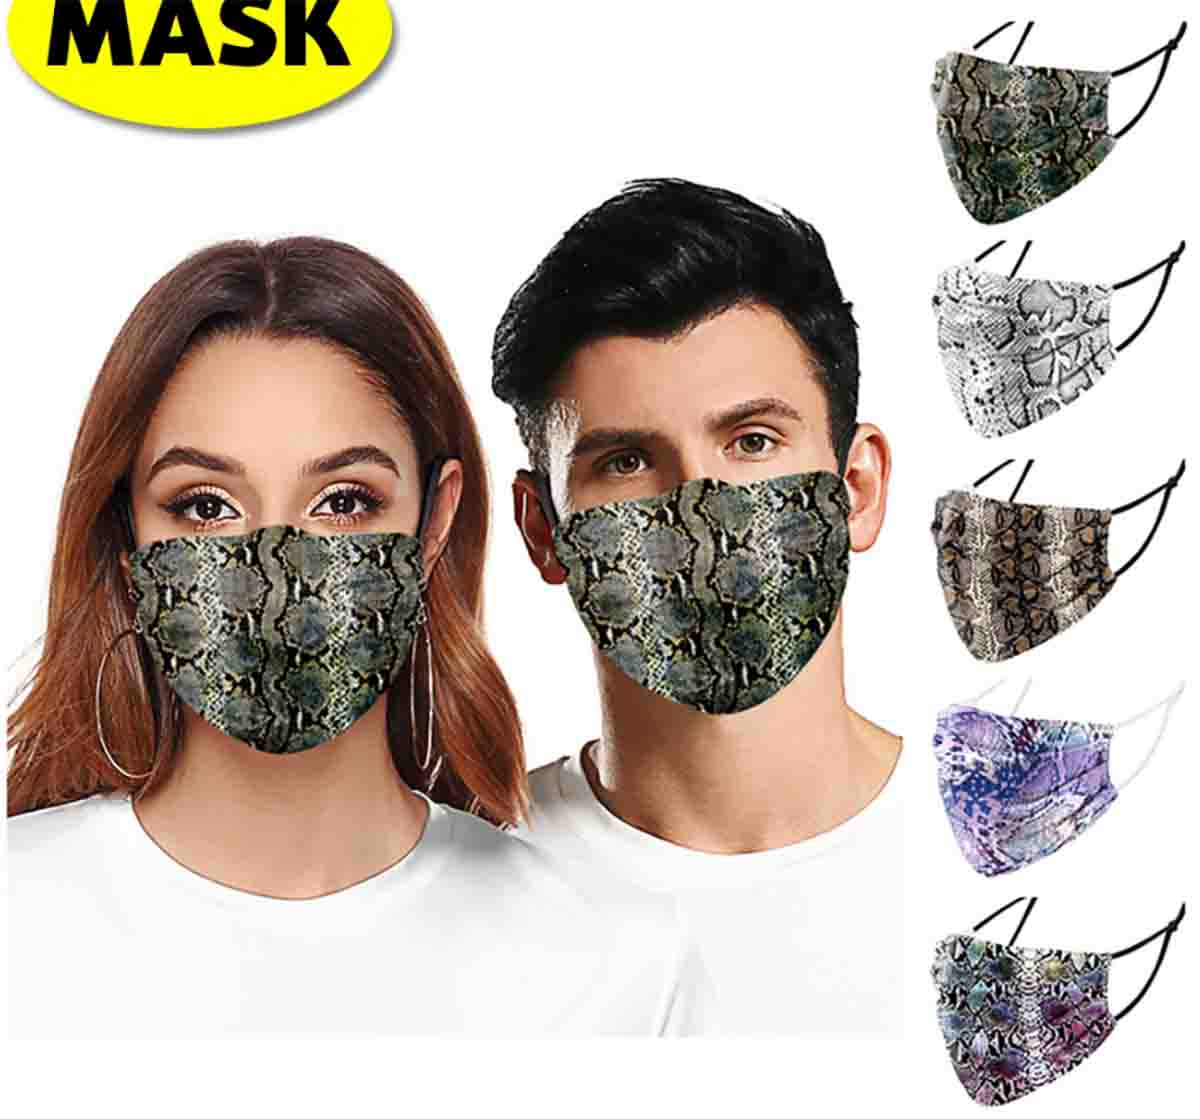 Mascarilla de tela aliexpress serpiente estampado